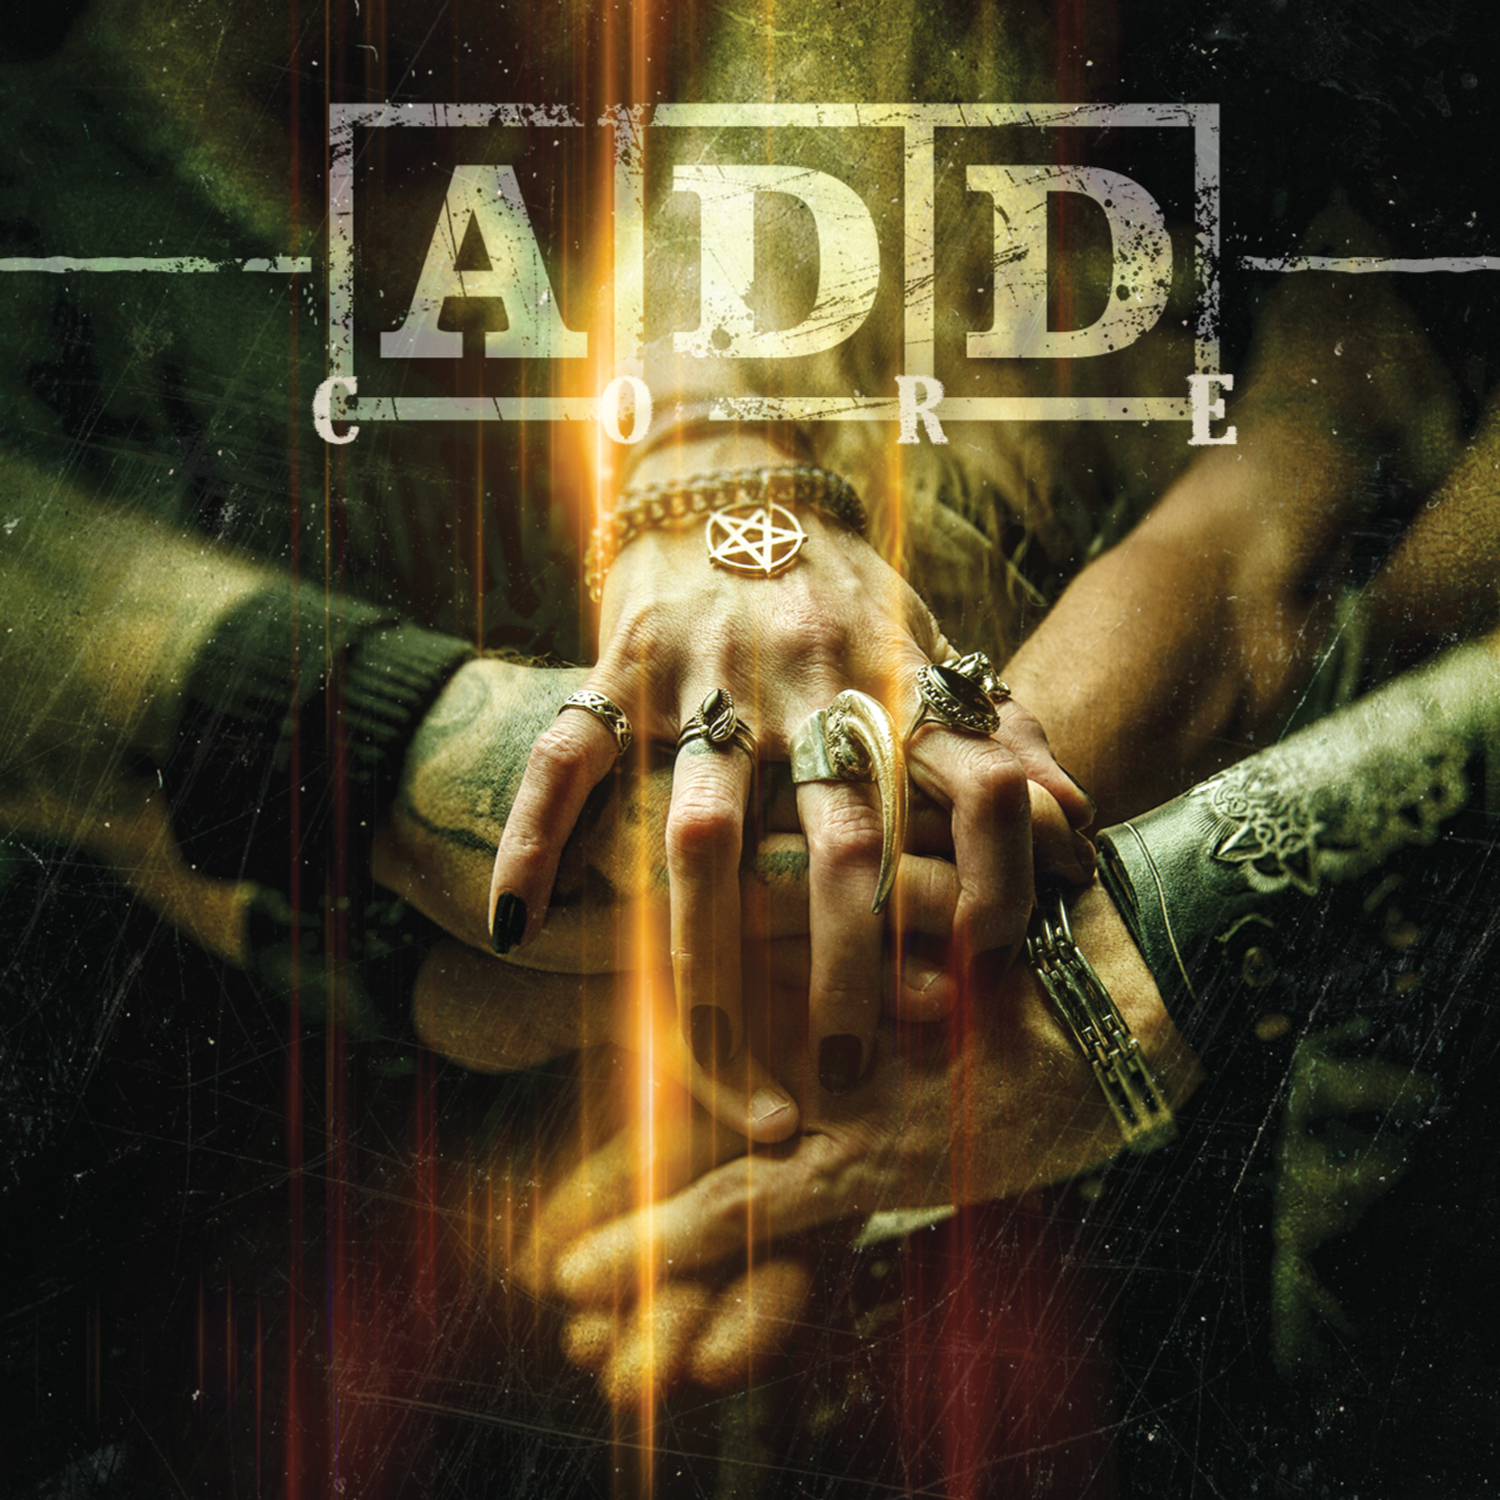 A.D.D. (Analog Digital Disorder)